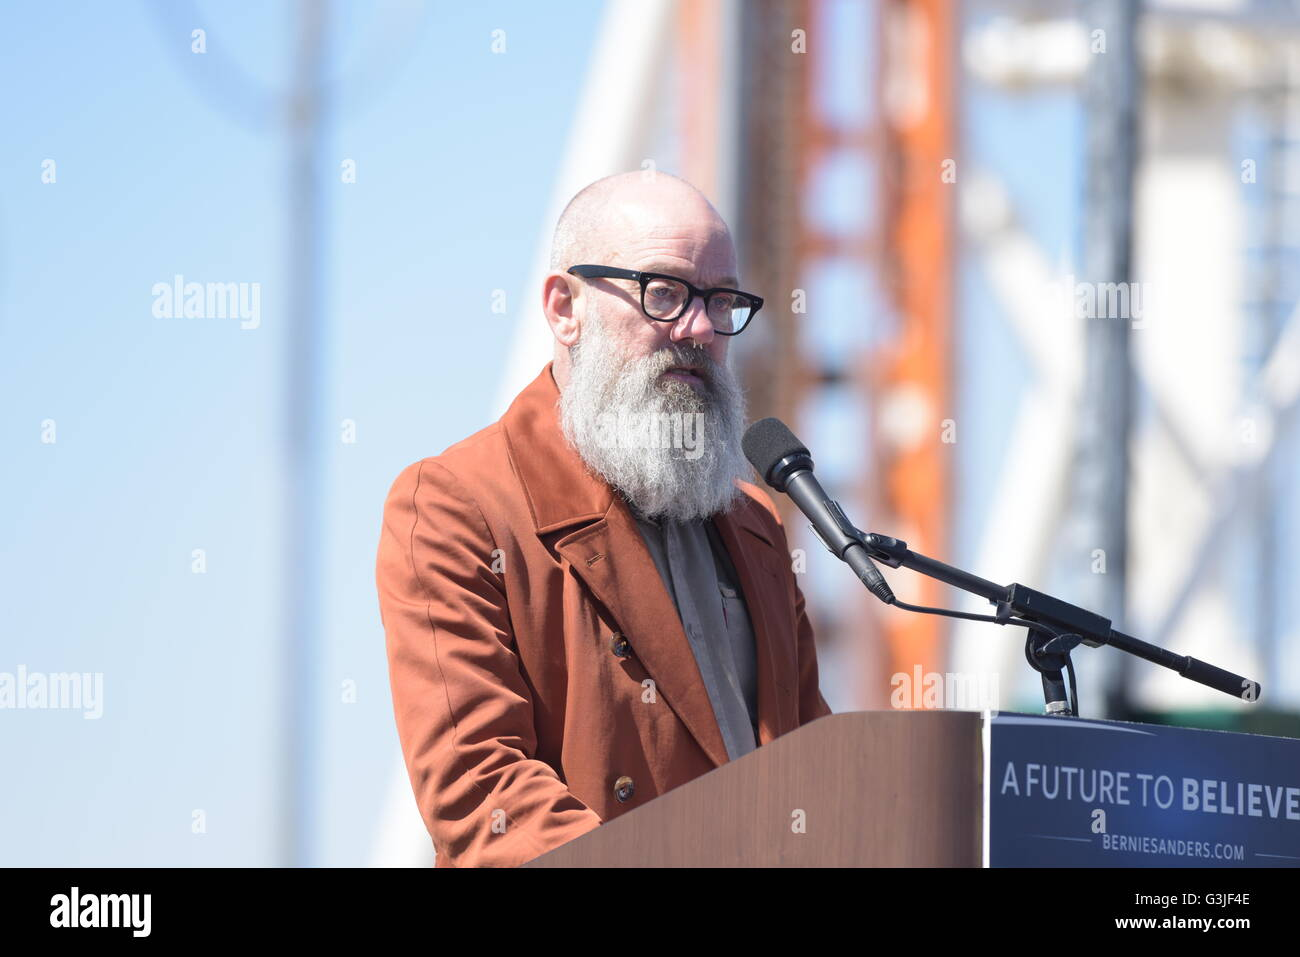 New York City, United States. 10th Apr, 2016. Micheal Stipe, former lead singer of REM & Sanders supporter, - Stock Image